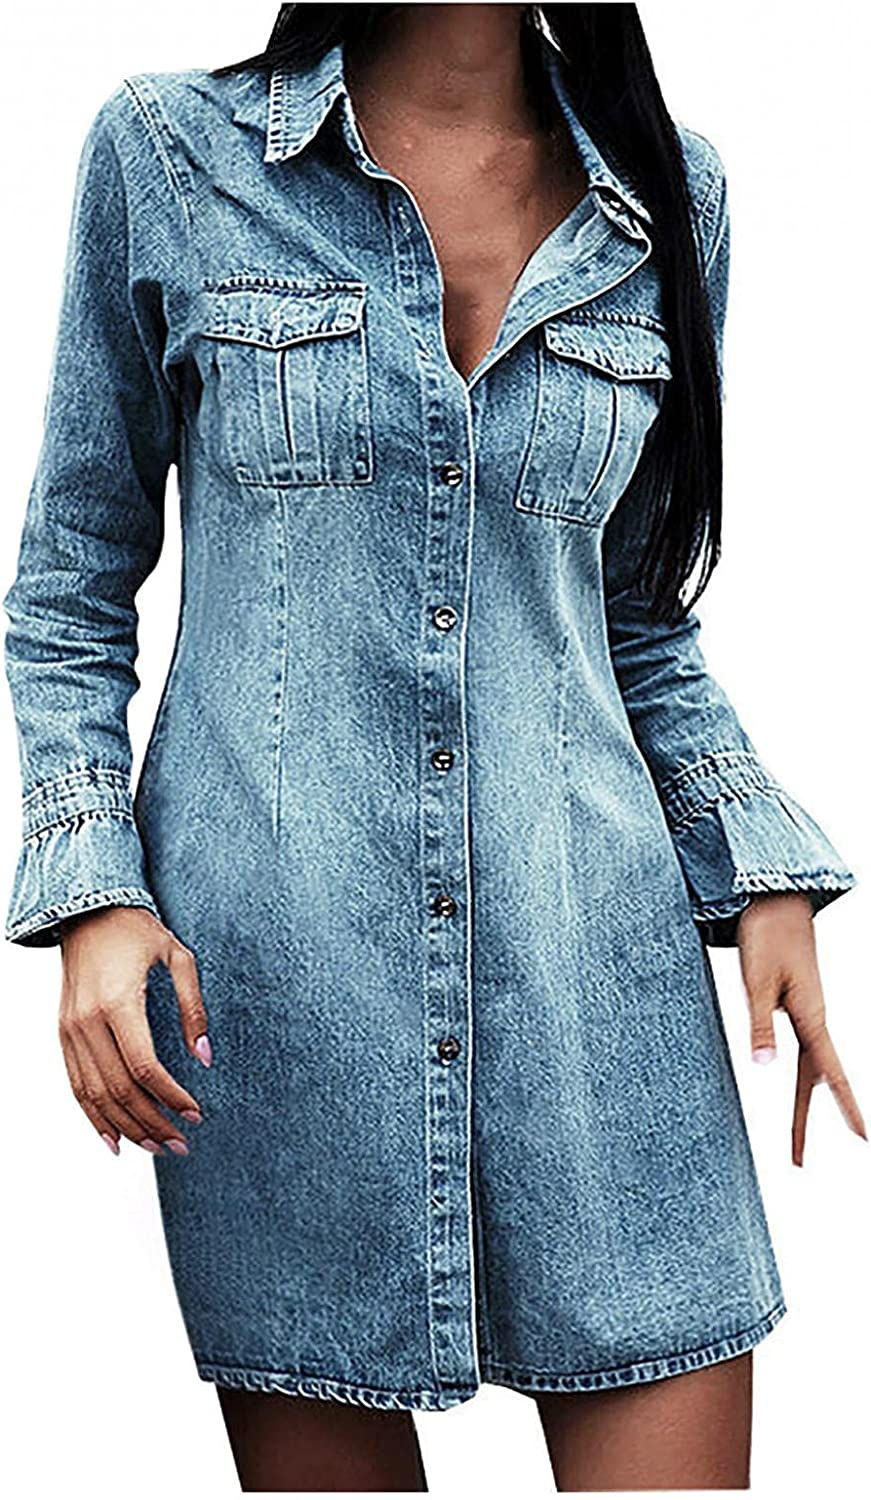 Denim Shirt Dresses for Women Long Sleeve Flared Sleeves Jean Dress Button Down Casual Tunic Top Sexy Midi Dress